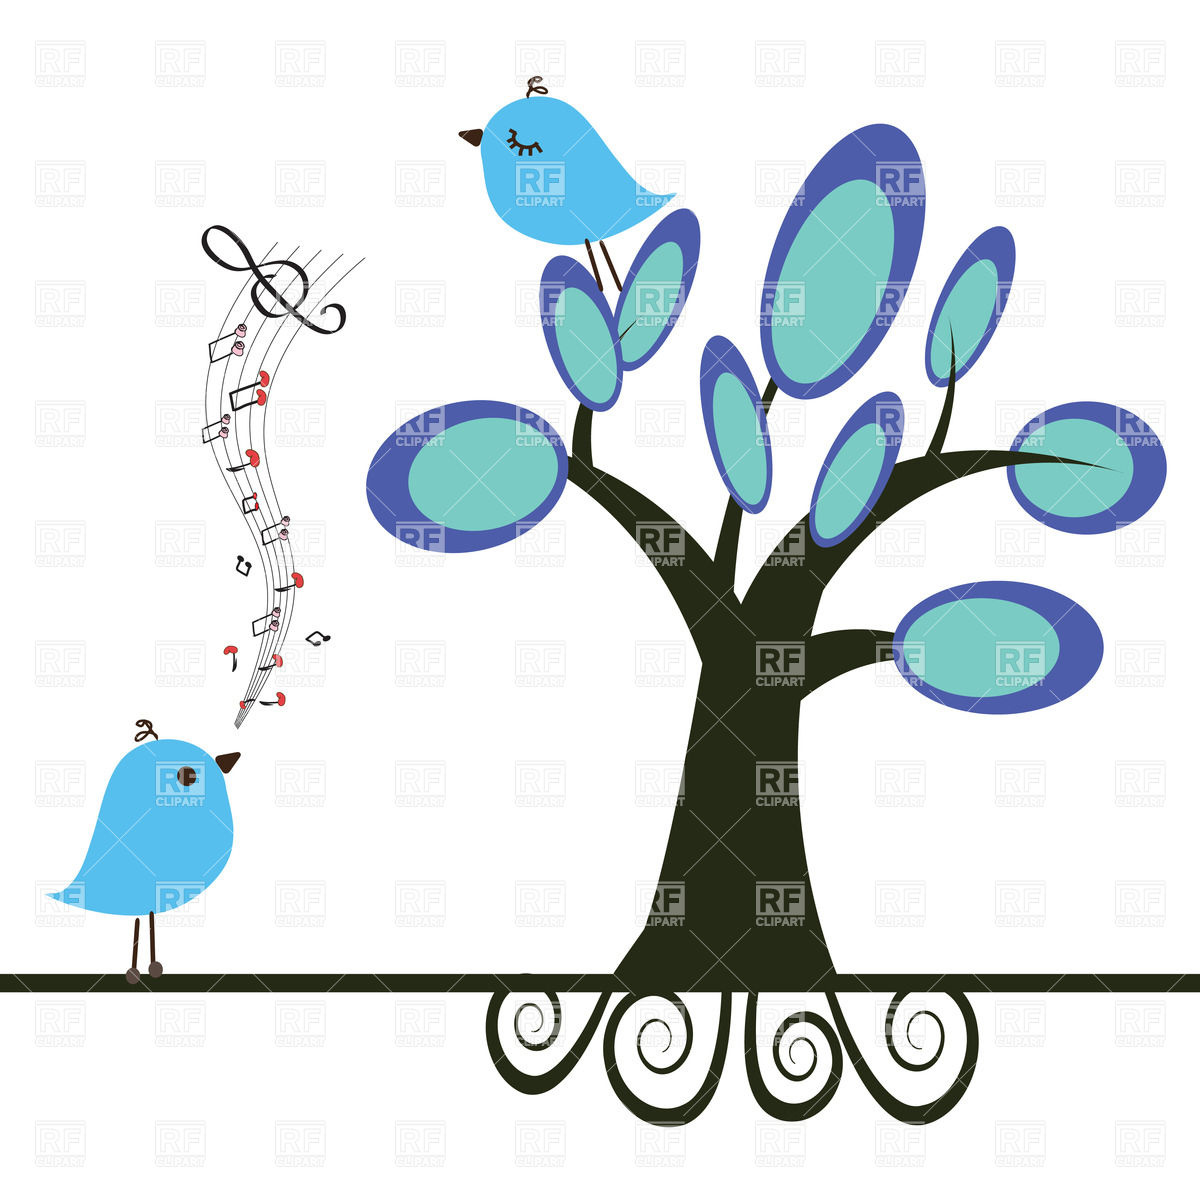 Singing birds clipart 20 free Cliparts | Download images ... (1200 x 1200 Pixel)